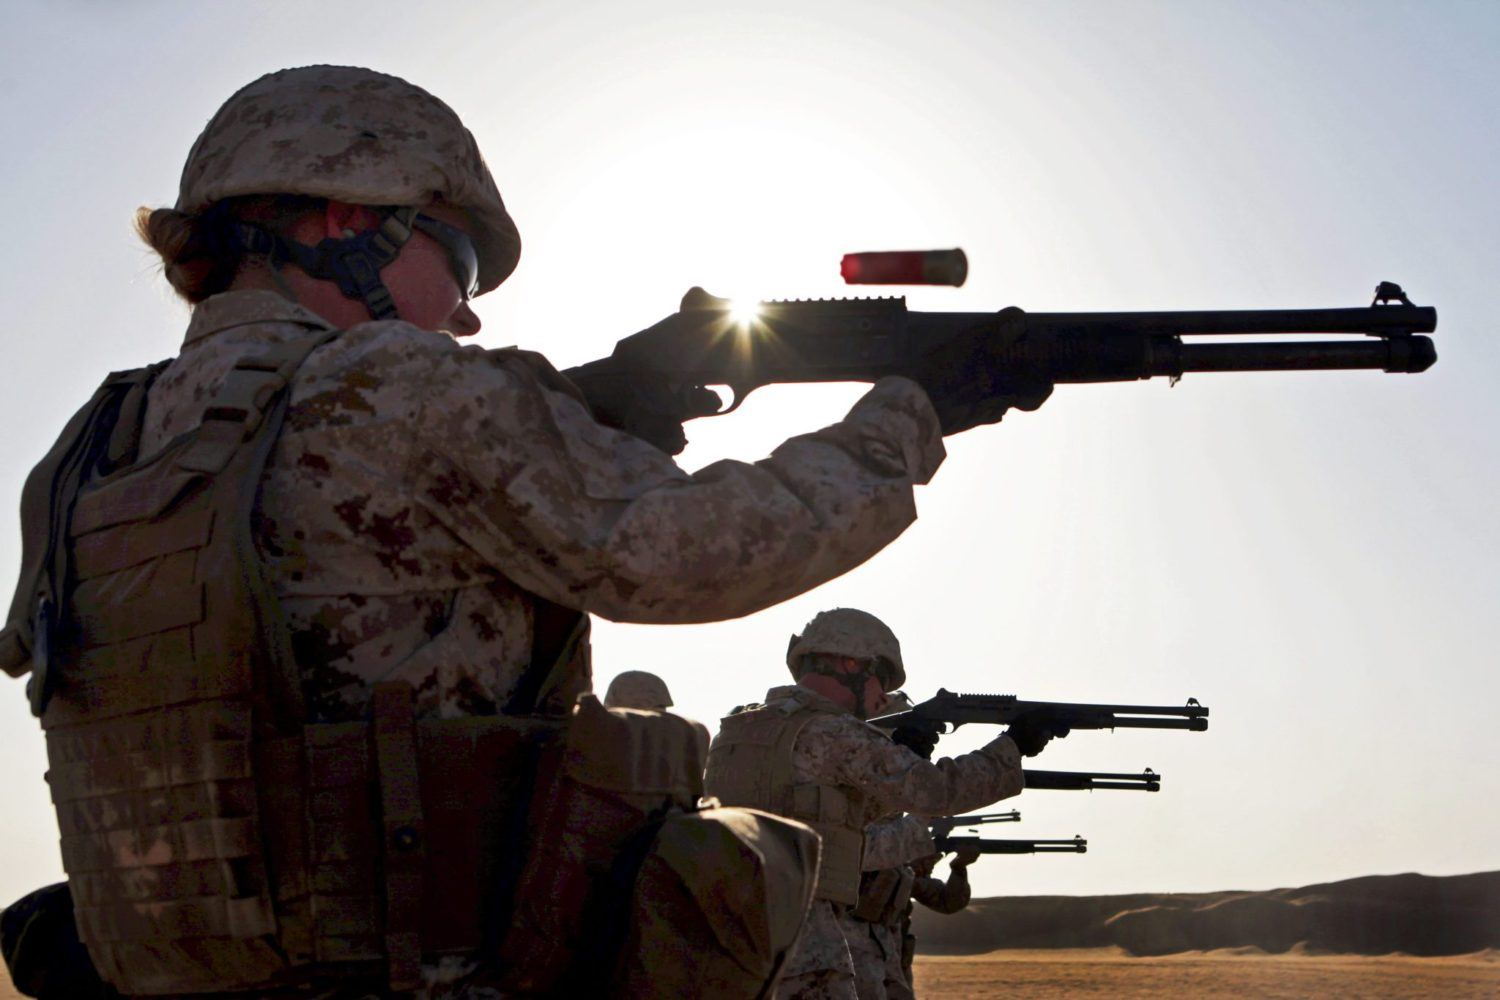 Sgt. Regina Smith, the radio supervisor and Sherevport, La., native with Combat Logistics Battalion 24, 24th Marine Expeditionary Unit, fires an M1014 shotgun during a shotgun range, Aug. 14, 2012, on Udairi Range, Kuwait. The Marines are in Kuwait as part of a 24th MEU sustainment training package. The 24th MEU is deployed with the Iwo Jima Amphibious Ready Group as a U.S. Central Command theater reserve force providing support for maritime security operations and theater security cooperation efforts in the U.S. 5th Fleet area of responsibility. (Official Marine Corps photo by Sgt. Richard Blumenstein)